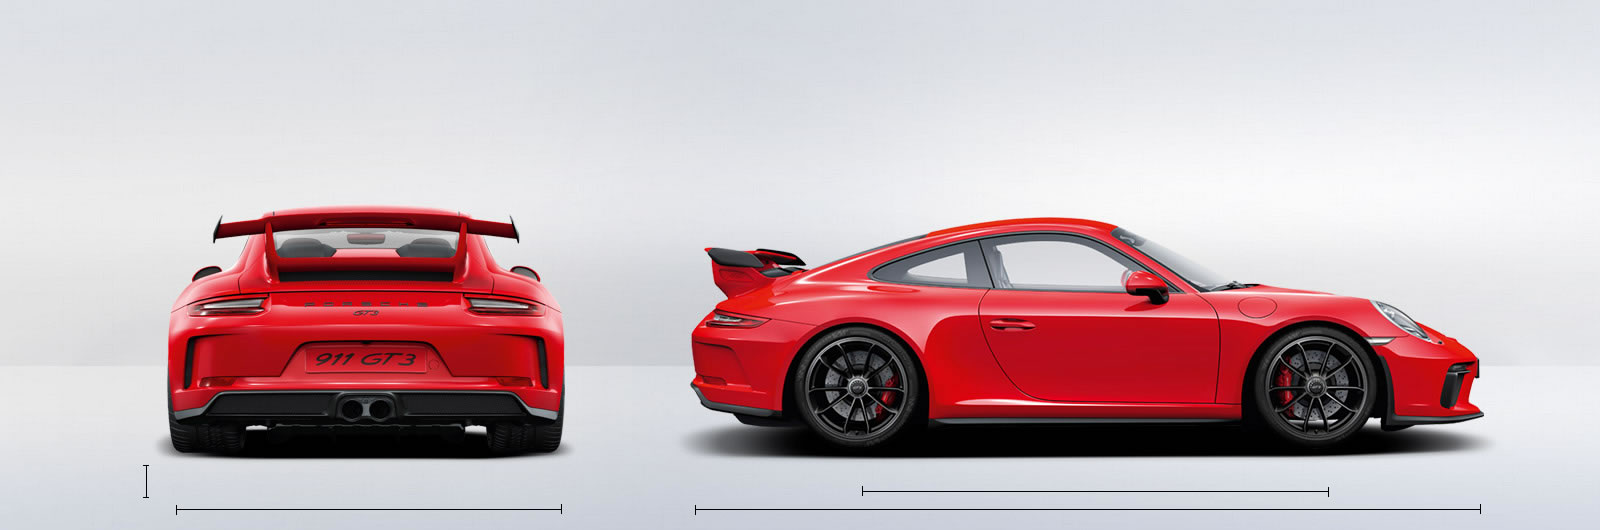 911 GT3 Specifications